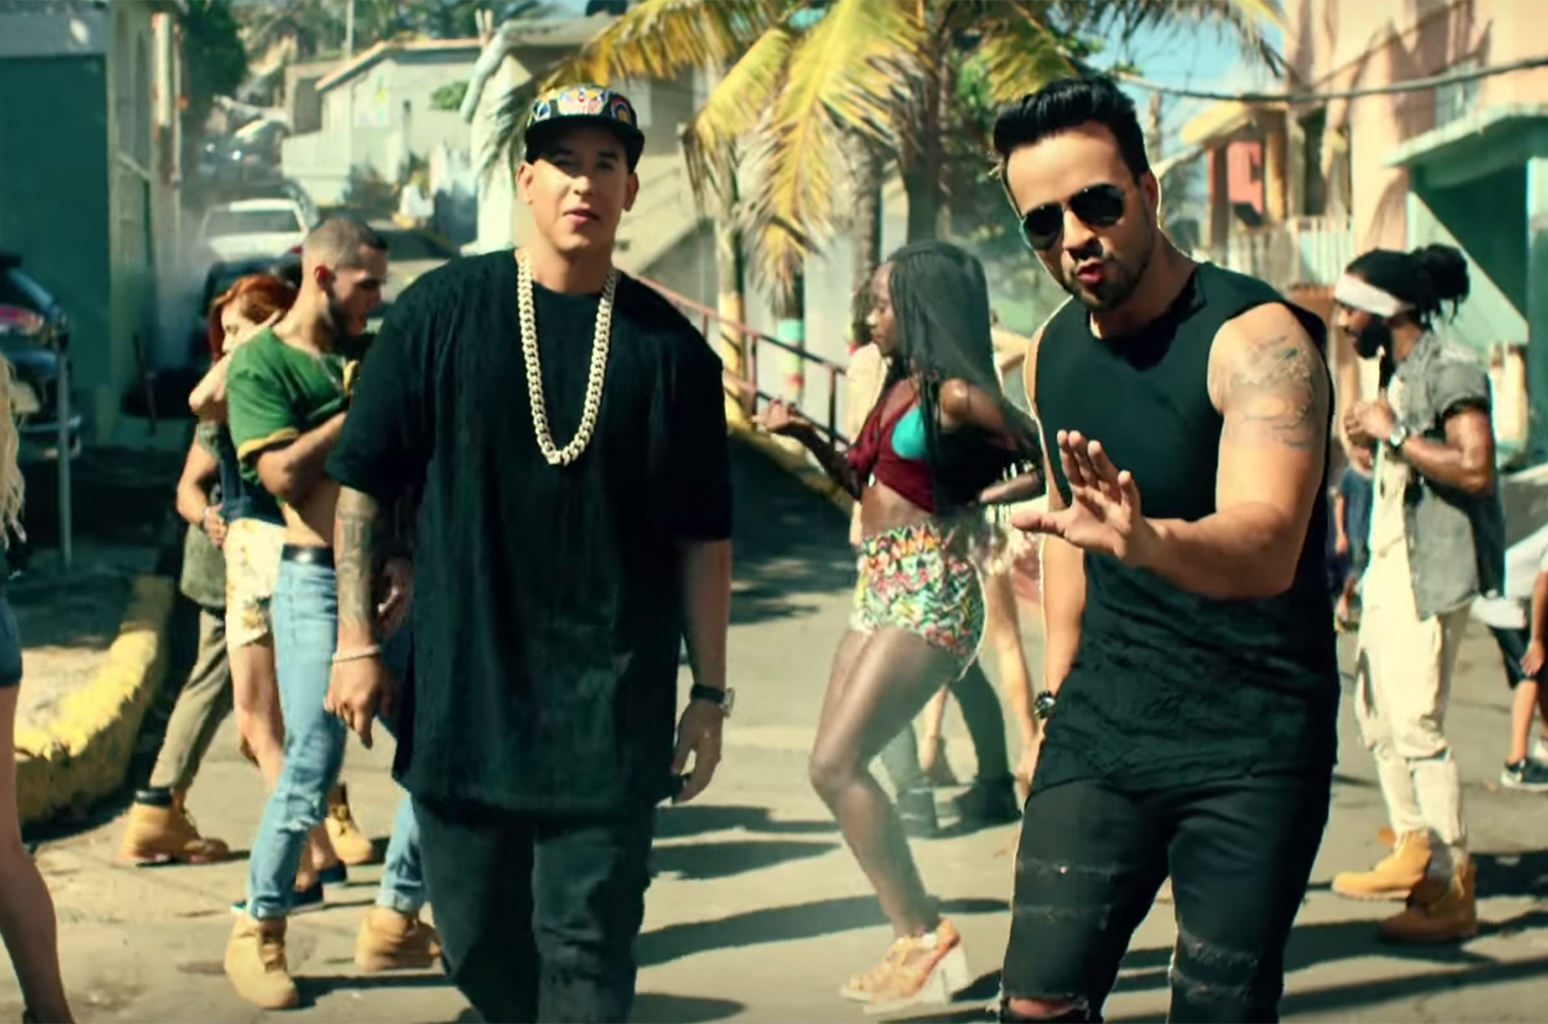 """Despacito"" Is Out of the Billboard Top 10, Marking the End of an Era"